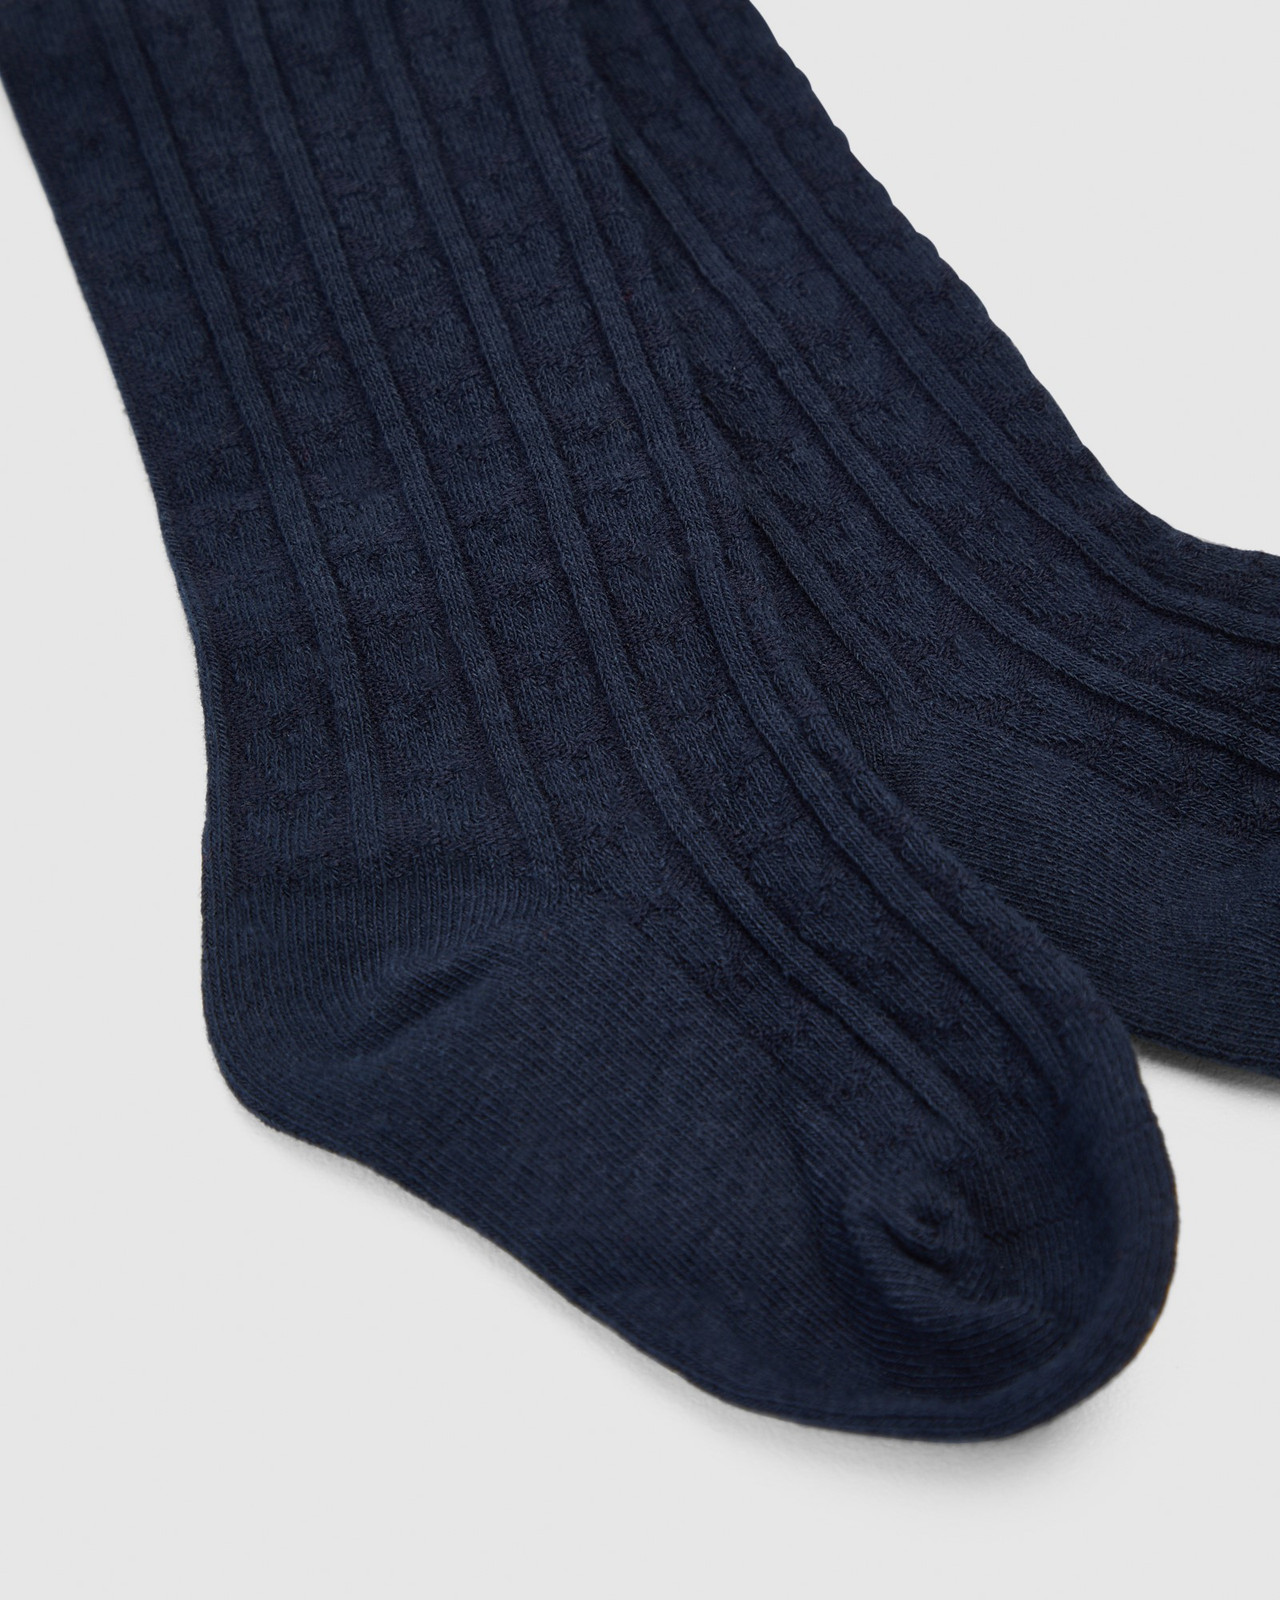 Shoes & Sox Girls HEART CABLE COTTON TIGHTS Navy